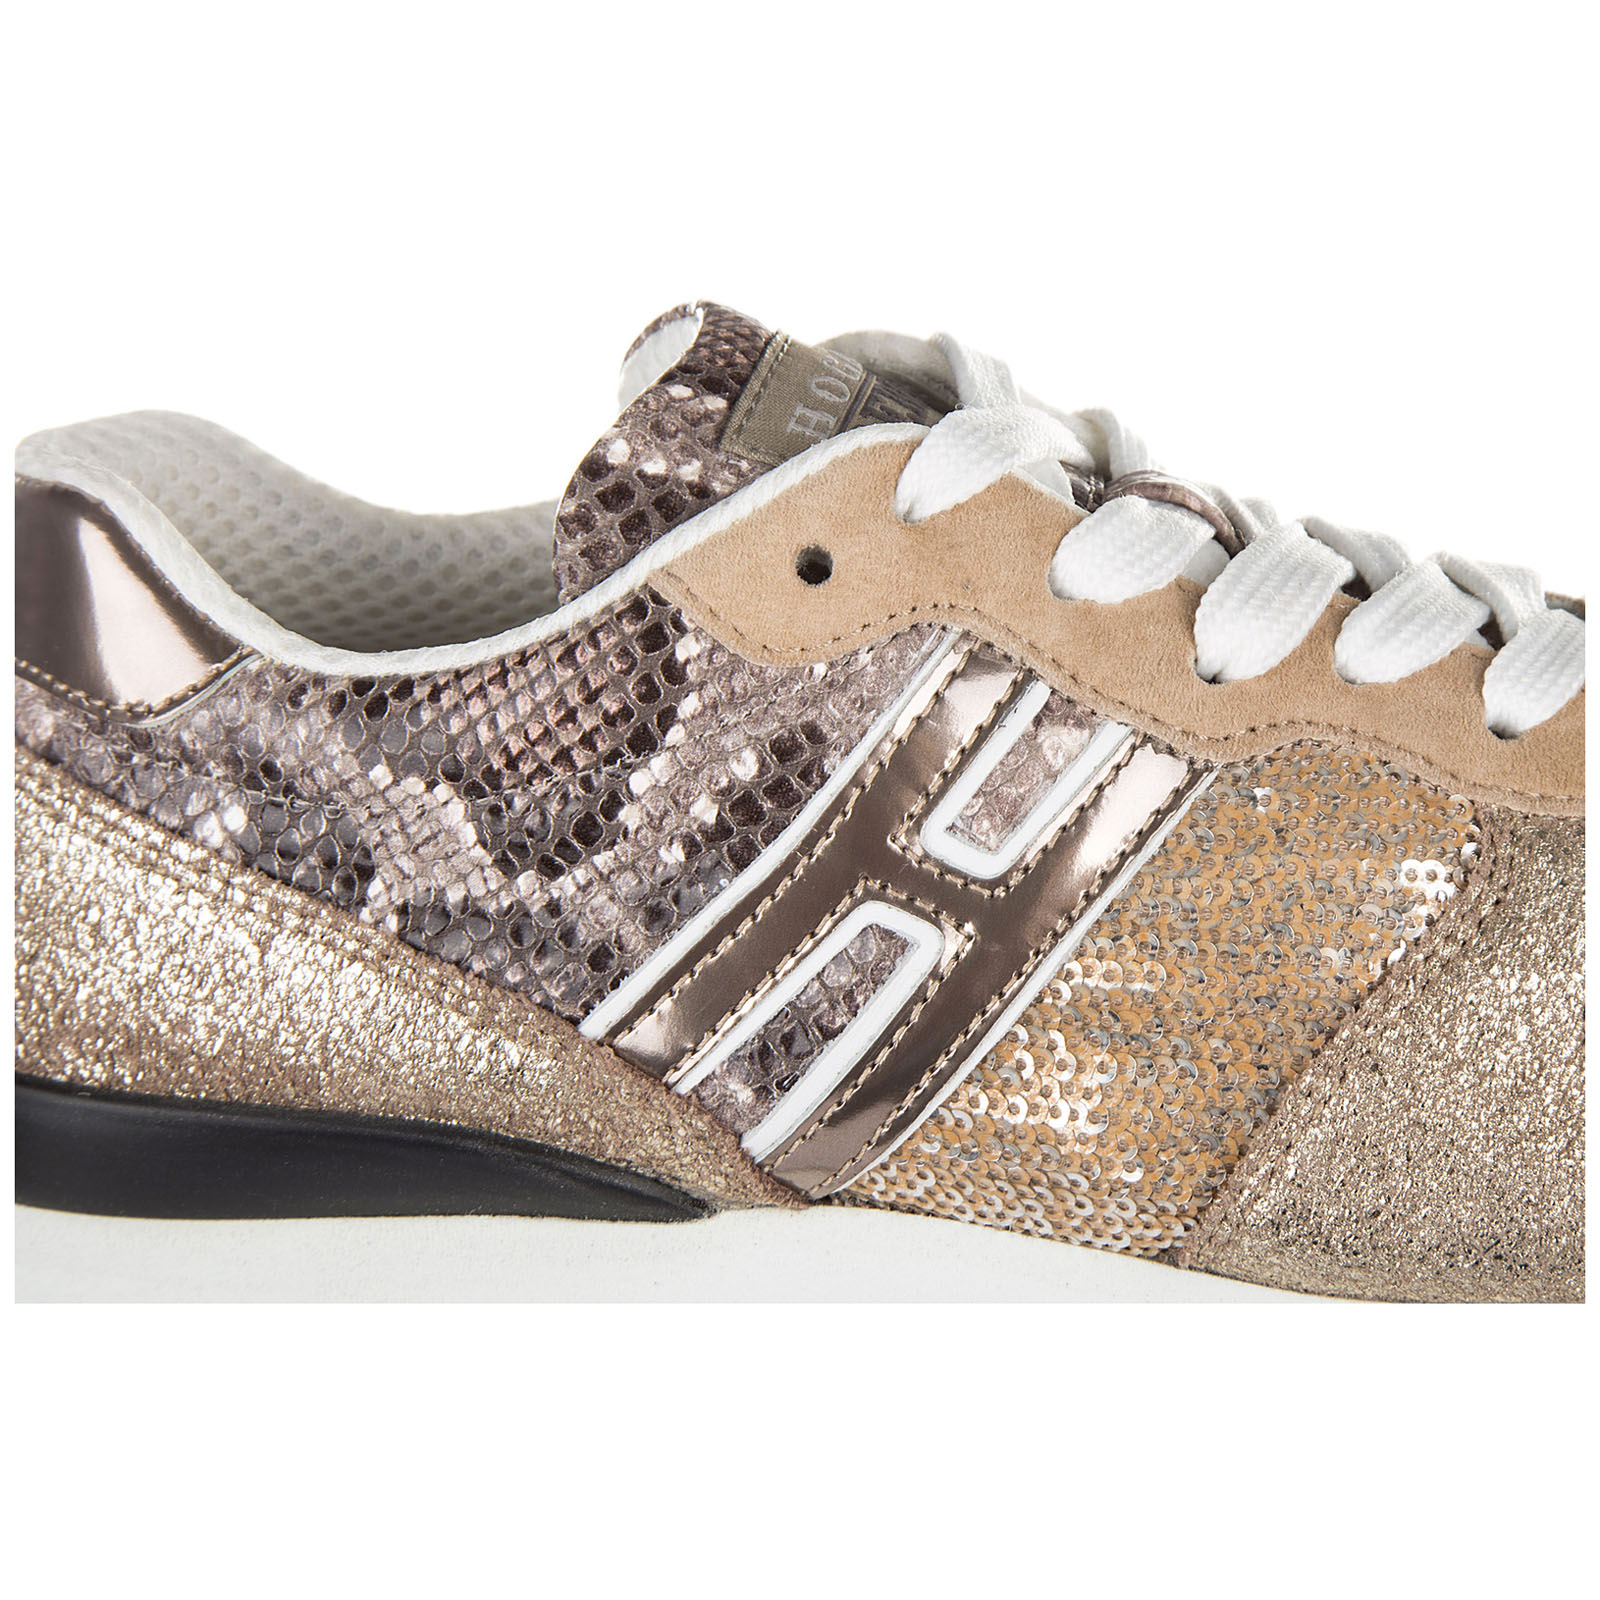 356e29ed261 ... Women s shoes leather trainers sneakers rebel r261 ...